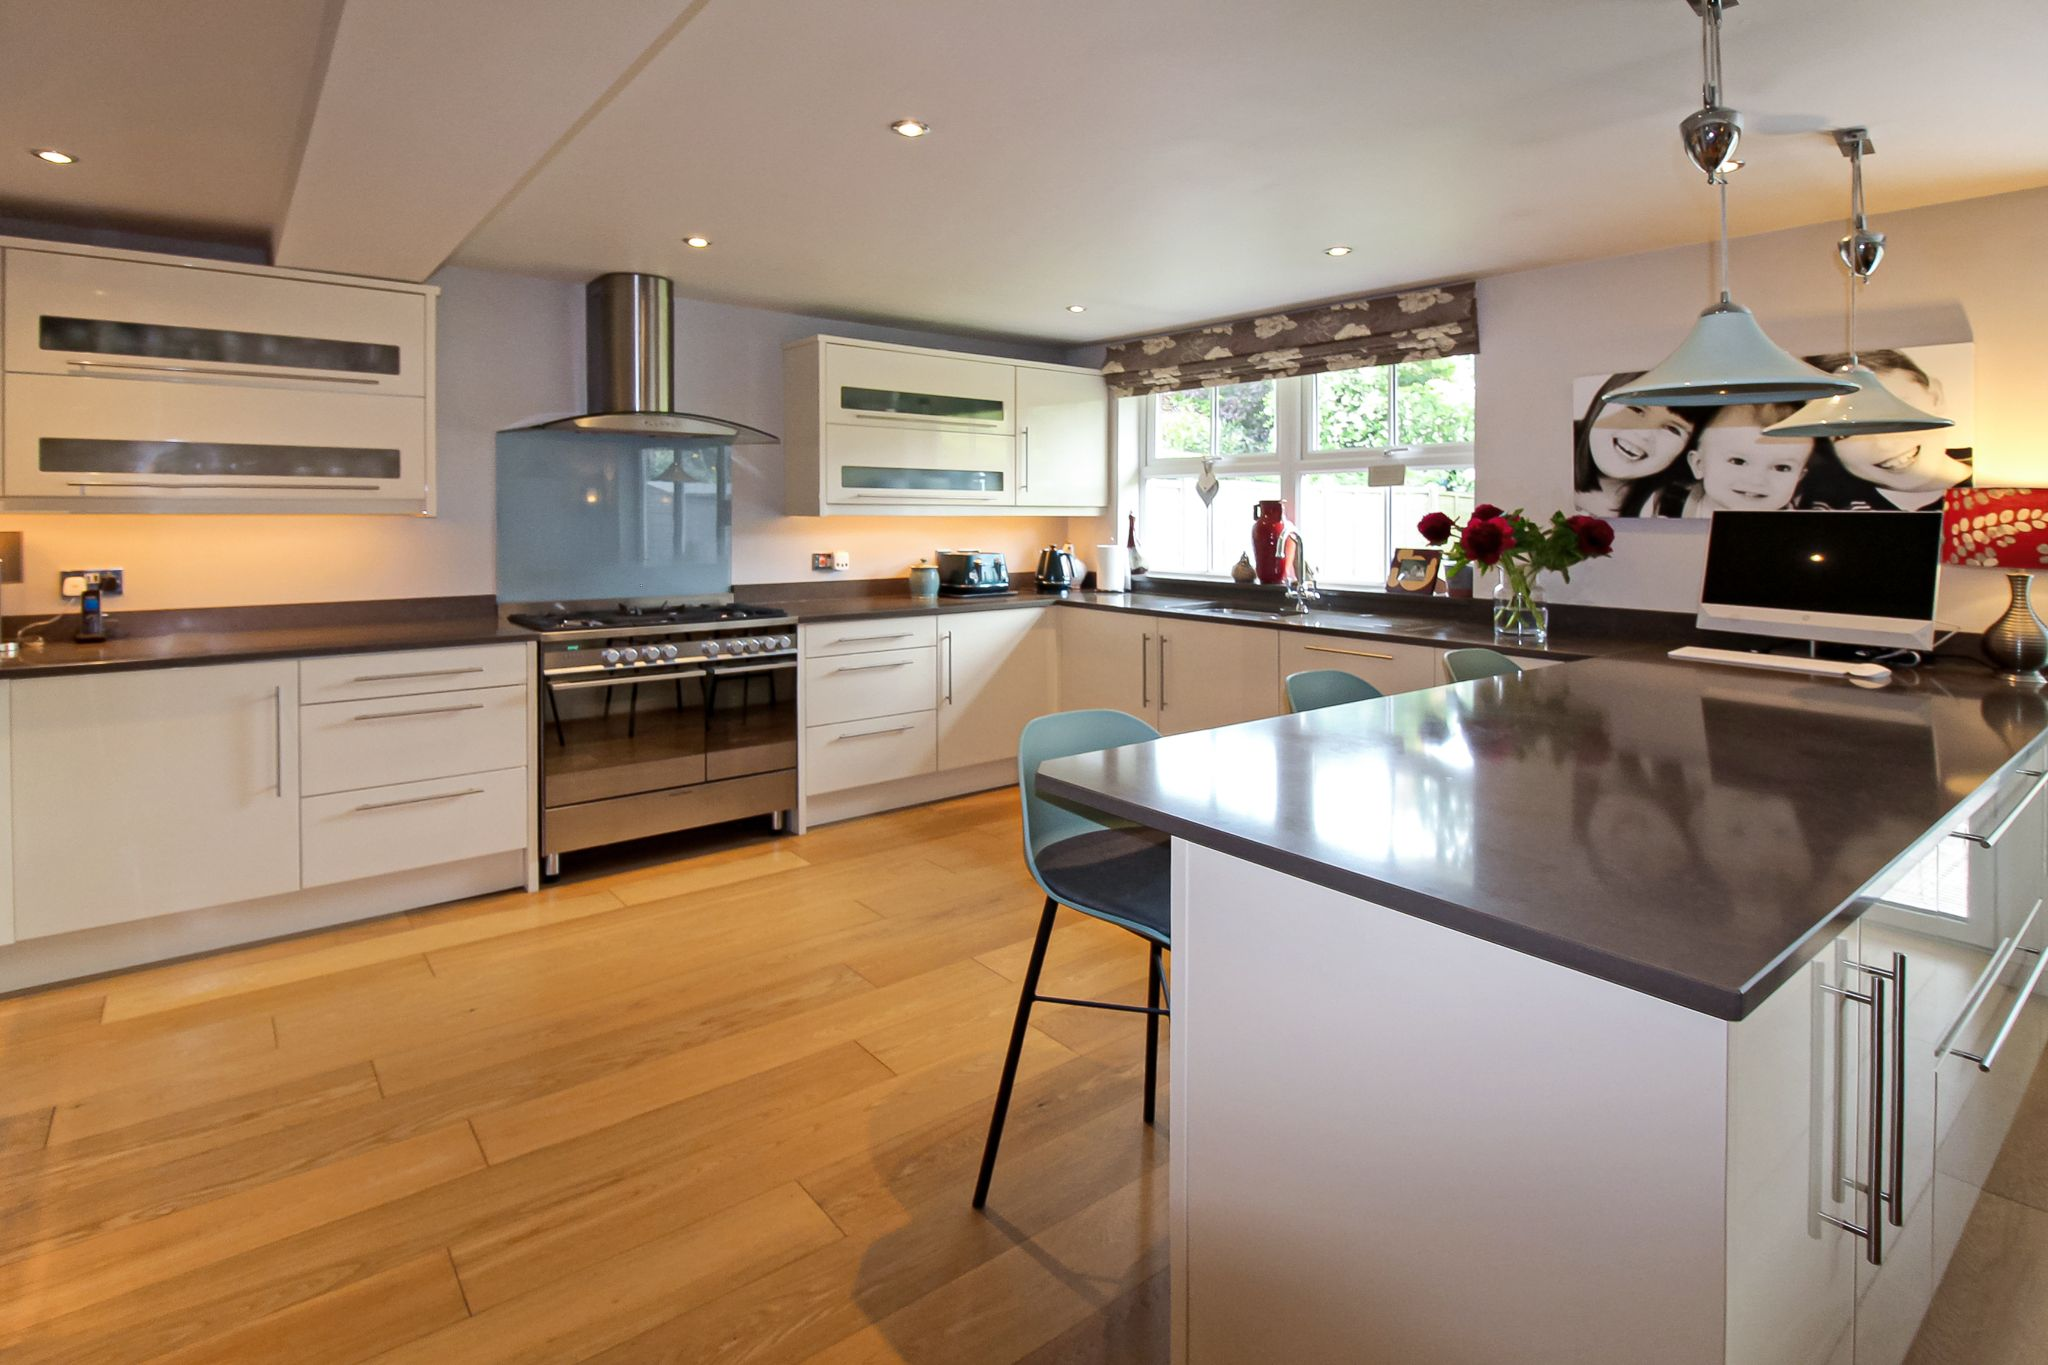 4 bedroom detached house SSTC in Solihull - Photograph 5.